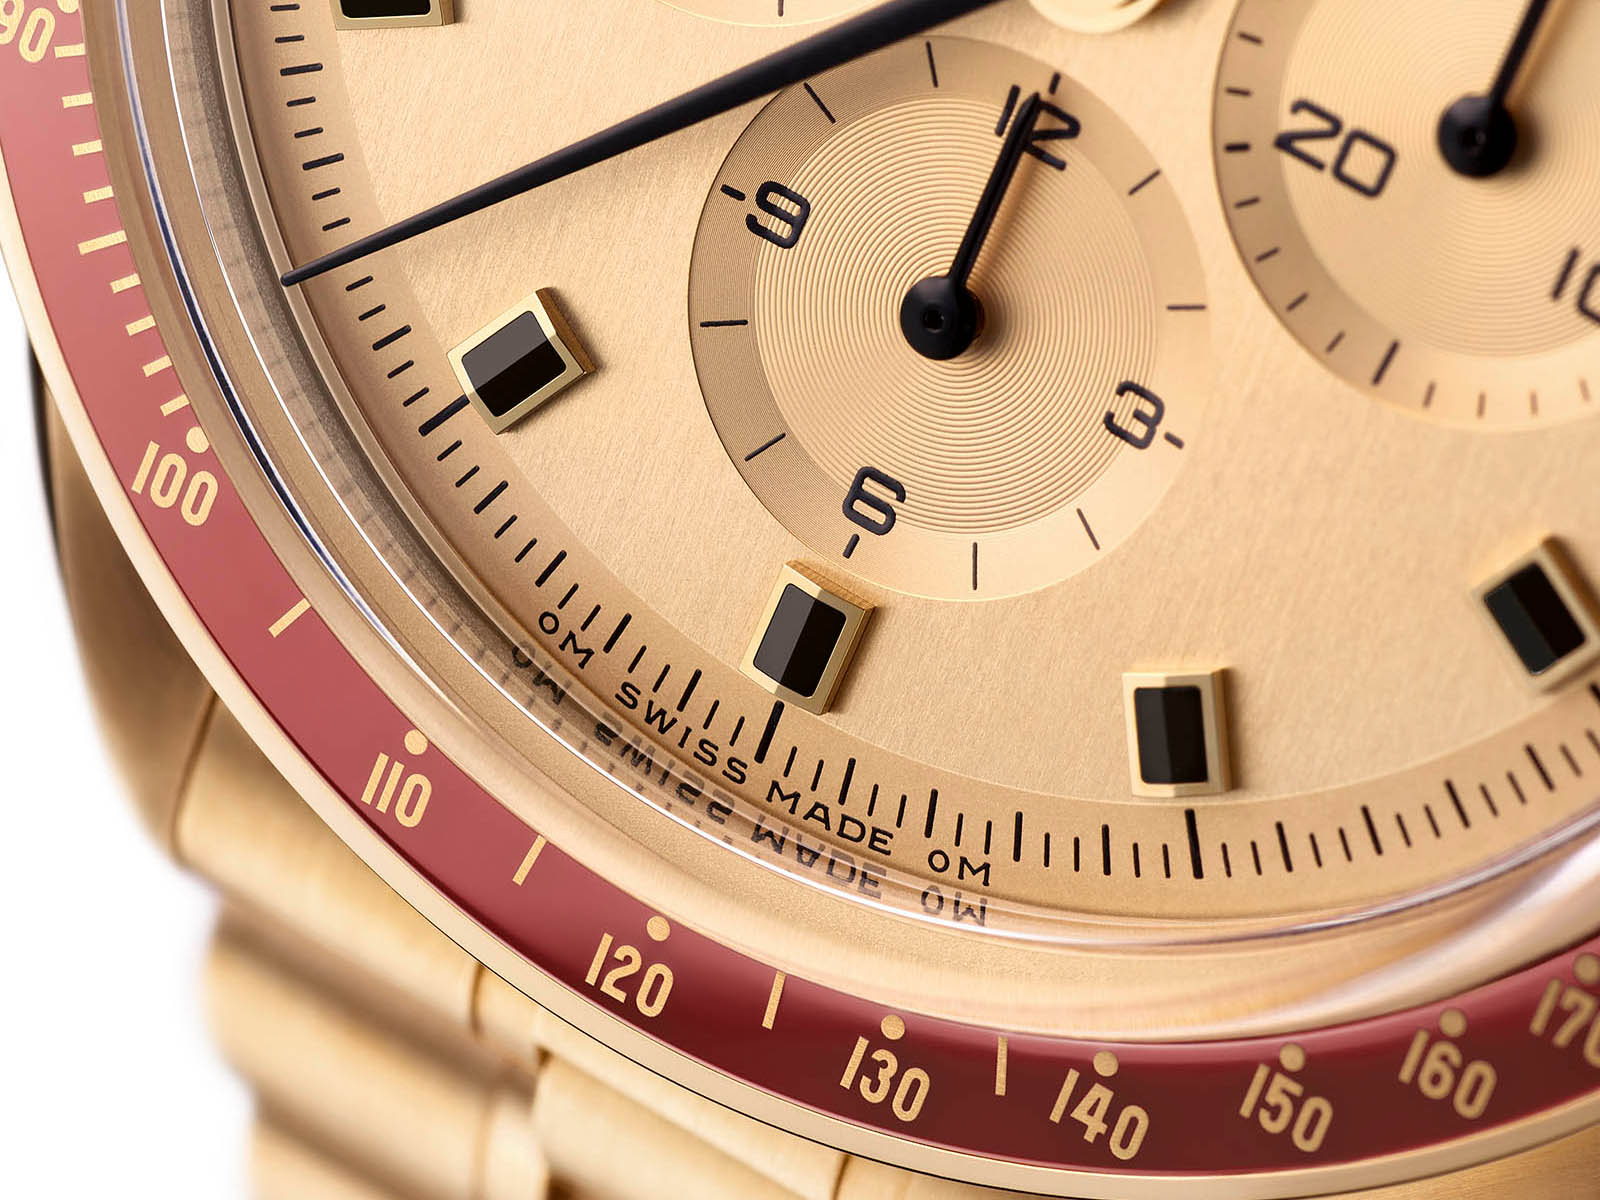 310-60-42-50-99-001-omega-speedmaster-apollo-11-50th-anniversary-6.jpg